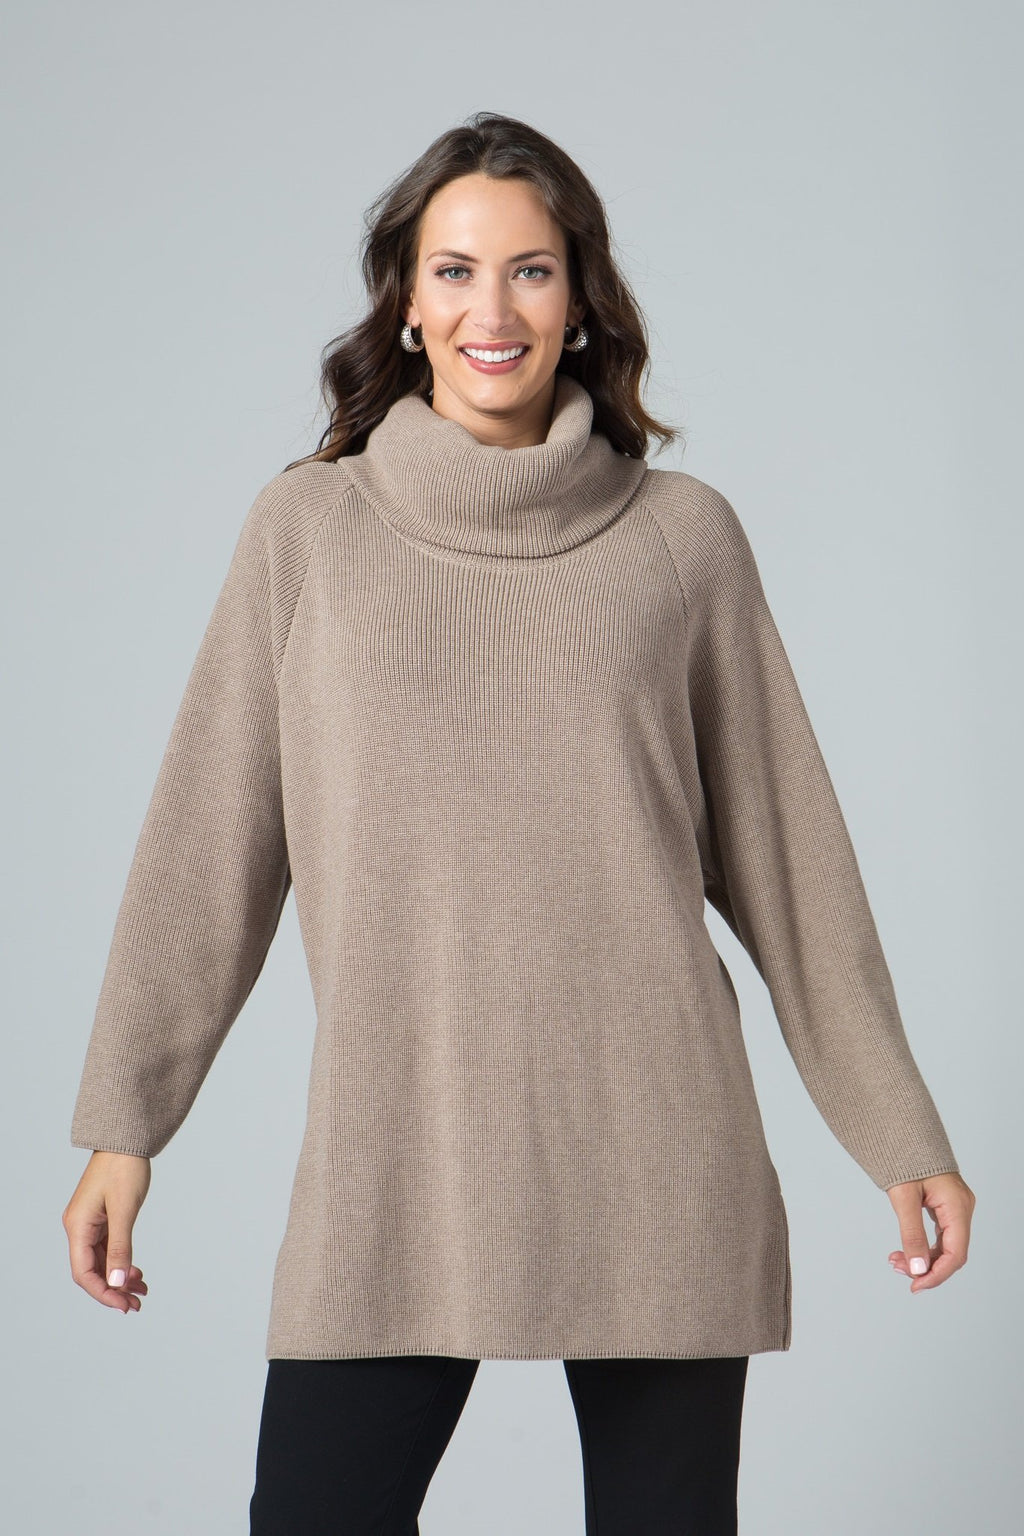 Oversized Cowl Neck Sweater Tunic - New Orleans Knitwear